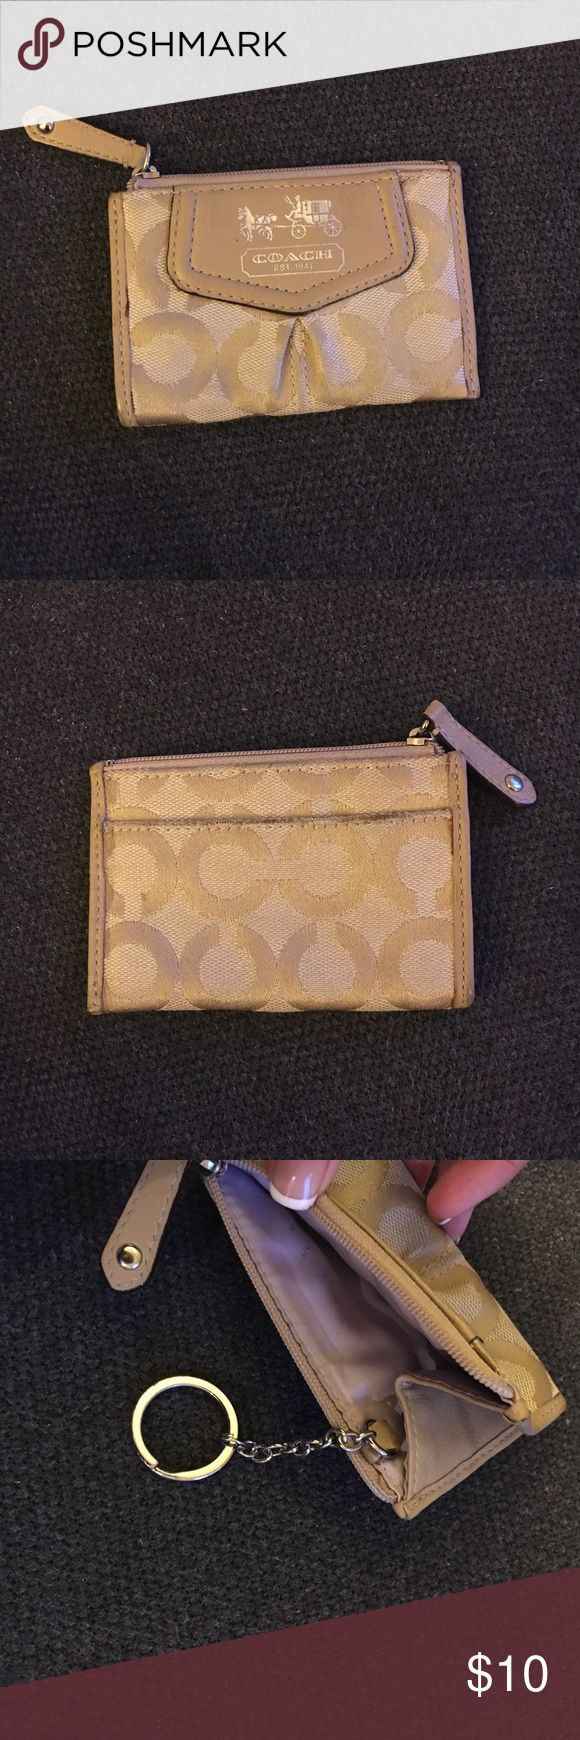 """Coach """"C"""" Signature Mini Skinny Wallet Good condition small zip wallet. Mini Skinny keeps keys, cards, and other small essentials secure within its remarkably skinny—and mini—silhouette. Coach Accessories Key & Card Holders"""